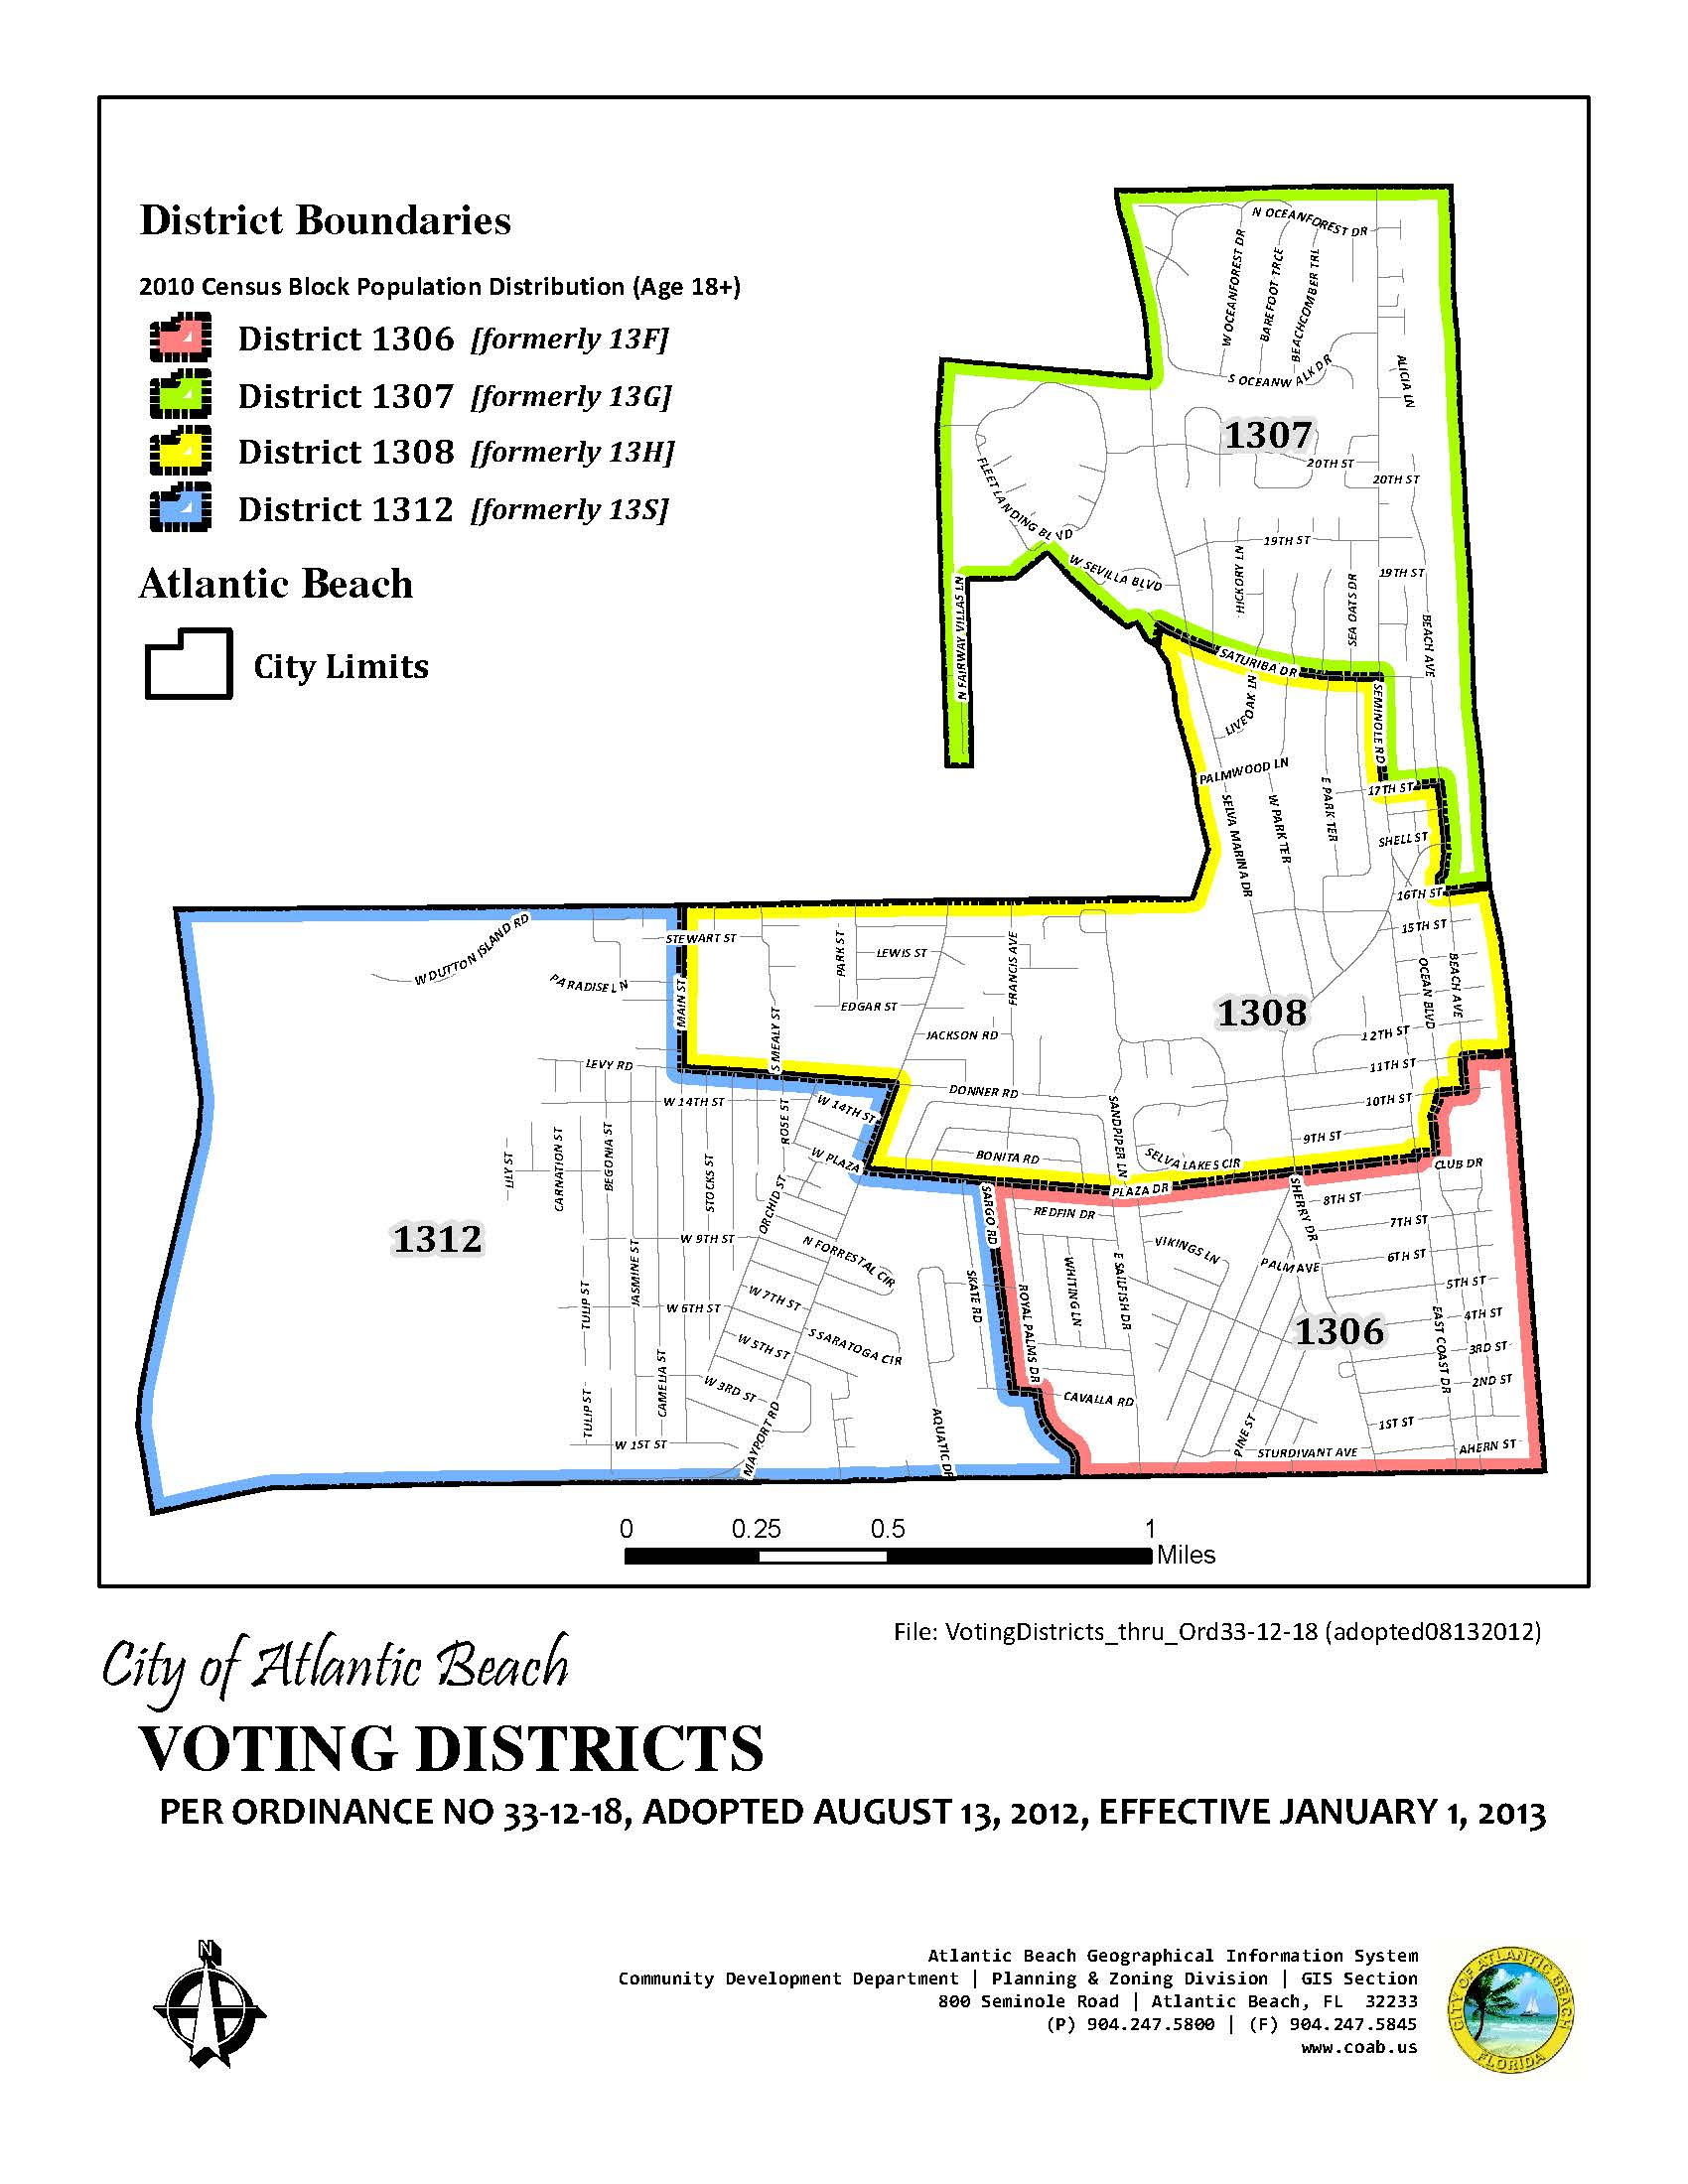 VotingDistricts_thru_Ord33-12-18 (adopted08132012).jpg